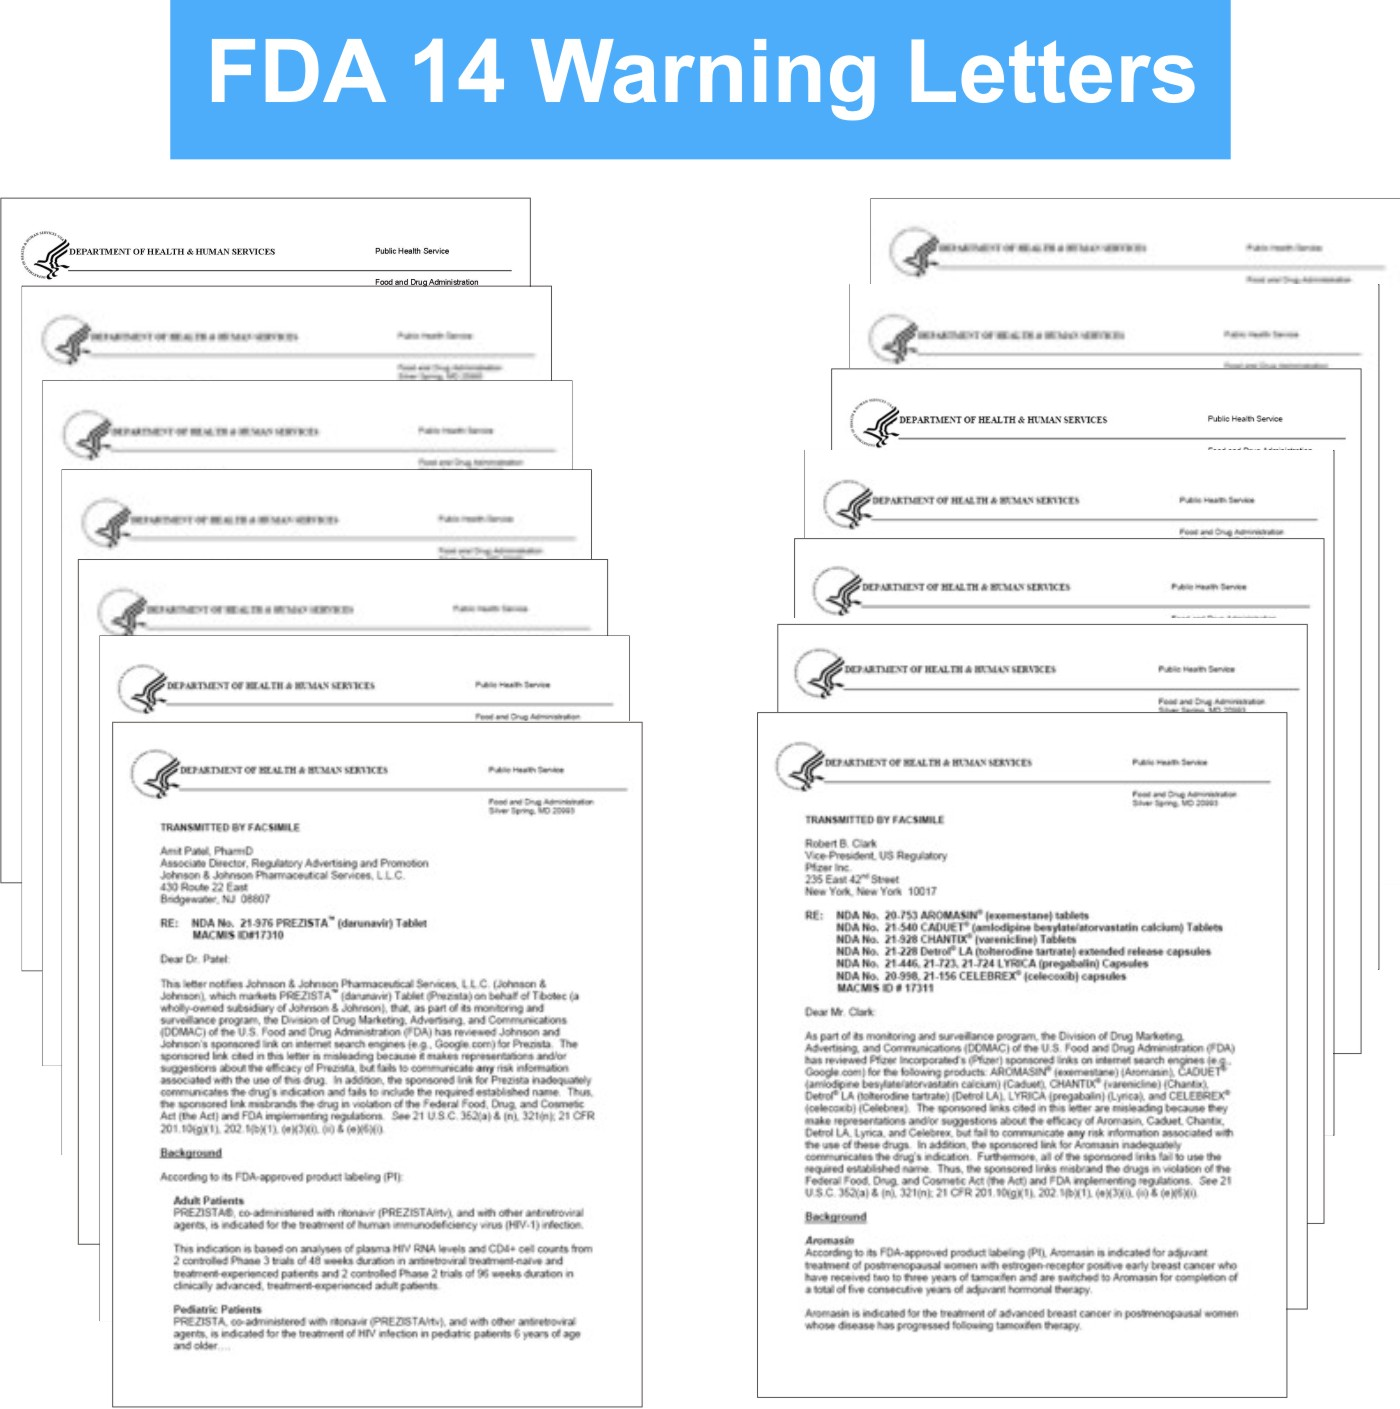 fda warning letters may double in 2010